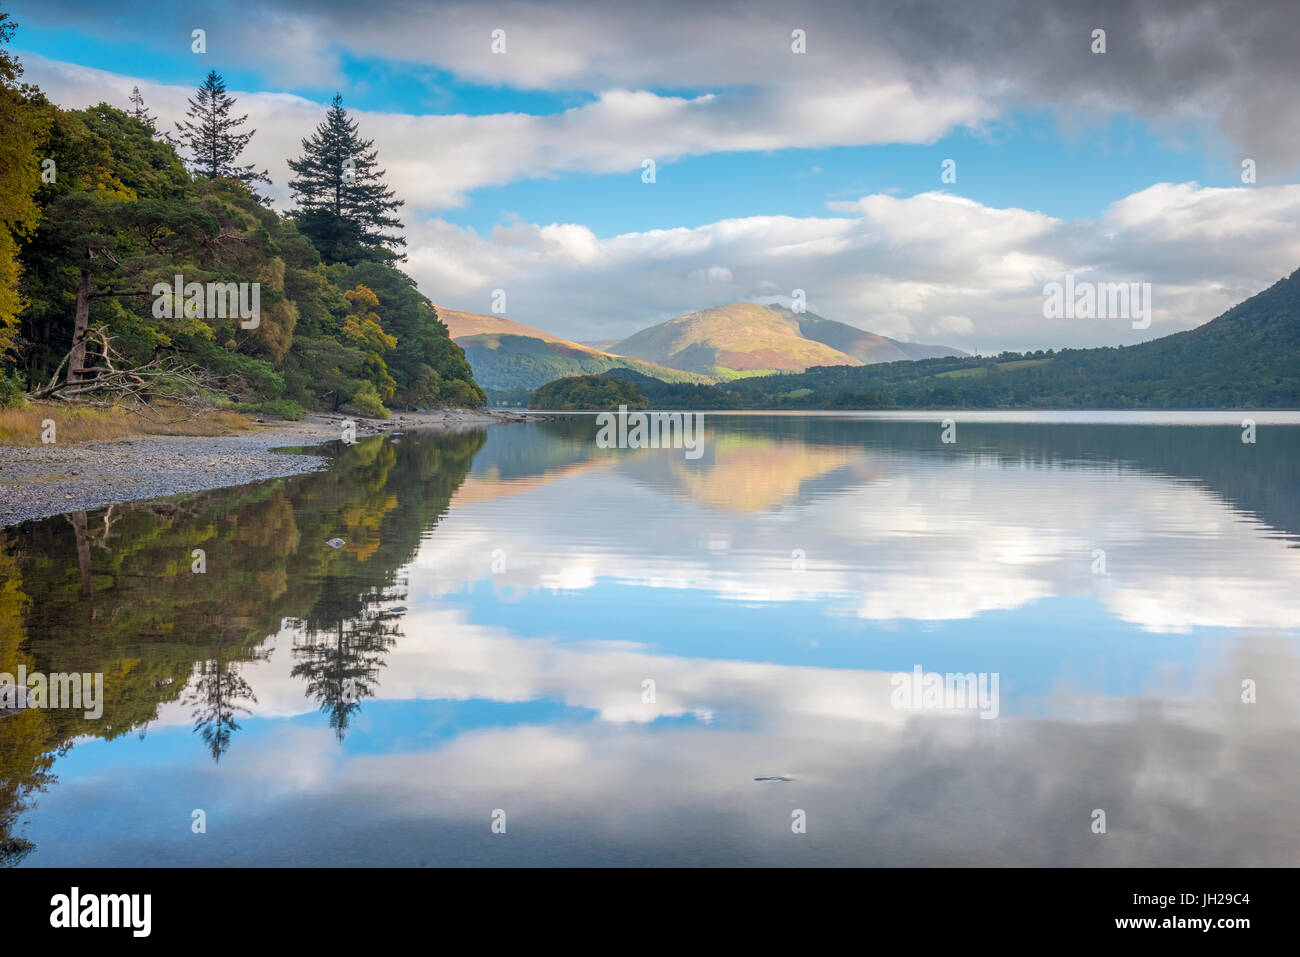 Reflections, Derwentwater, Lake District National Park, Cumbria, England, United Kingdom, Europe - Stock Image